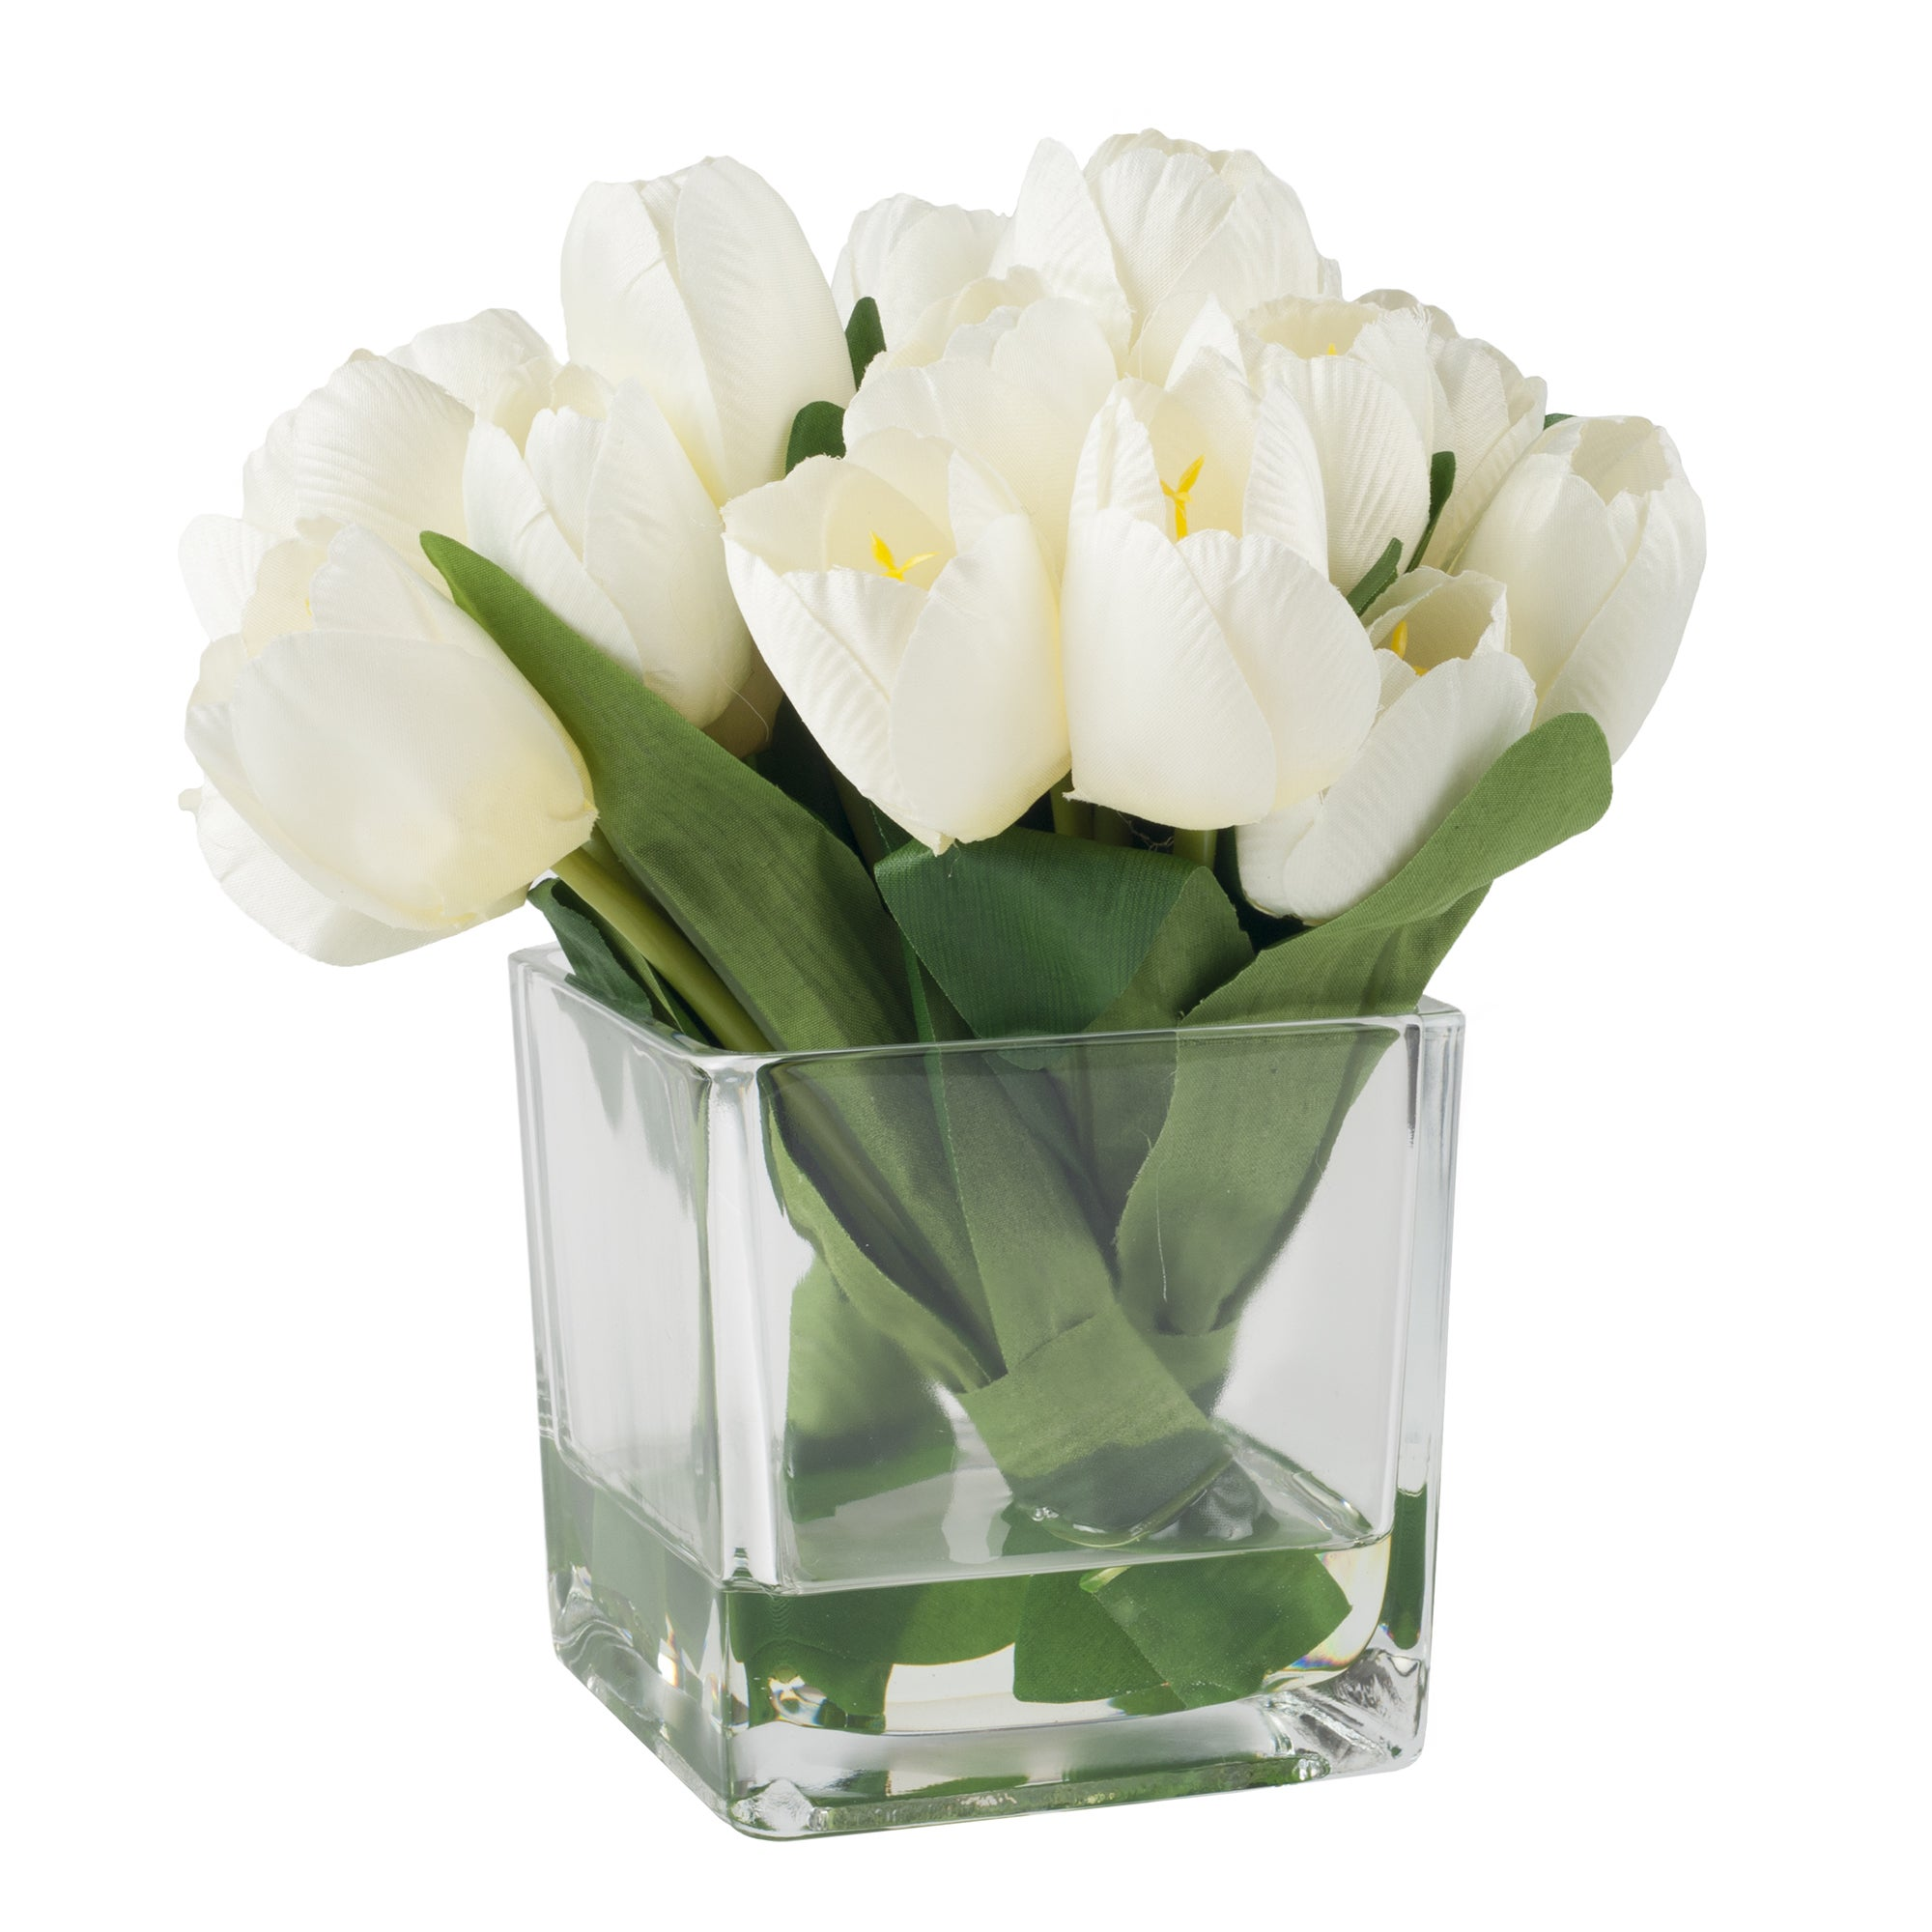 tulips tulip vase in arrangement specialties silk flower arranged lg with product